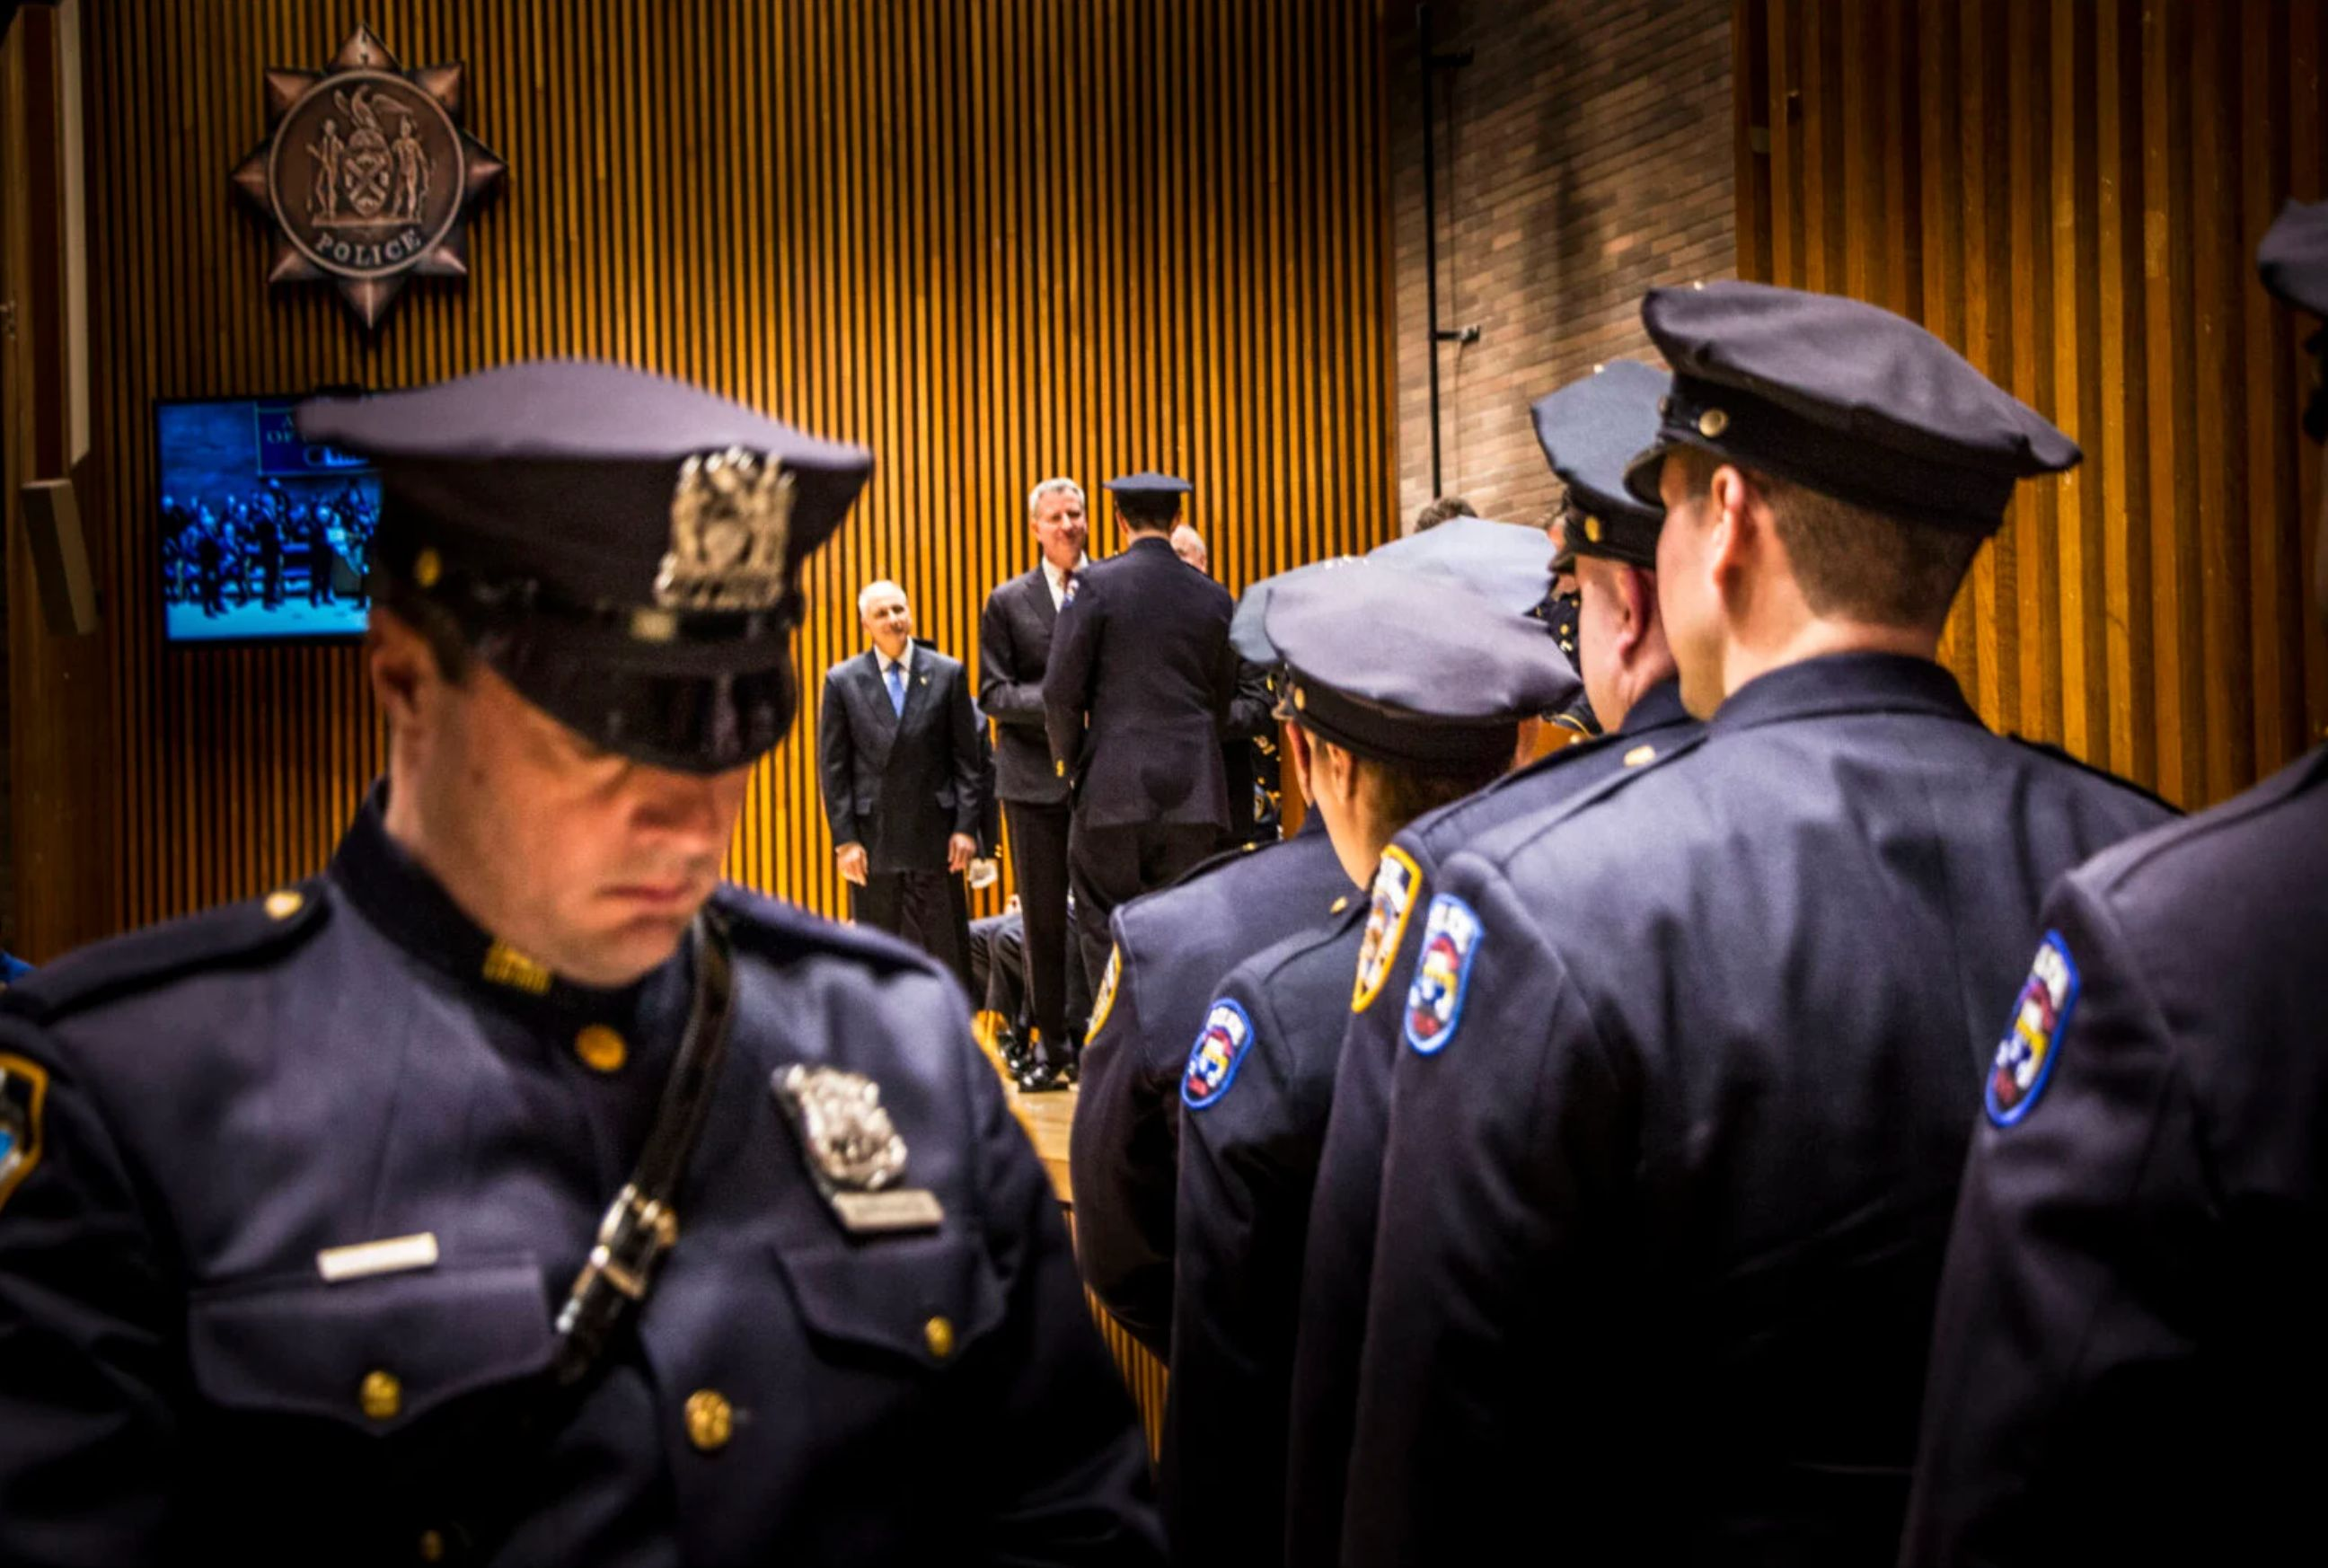 Mayor Bill de Blasio and Bratton congratulate officers at a promotion ceremony in 2014. (Mark Peterson/Redux)